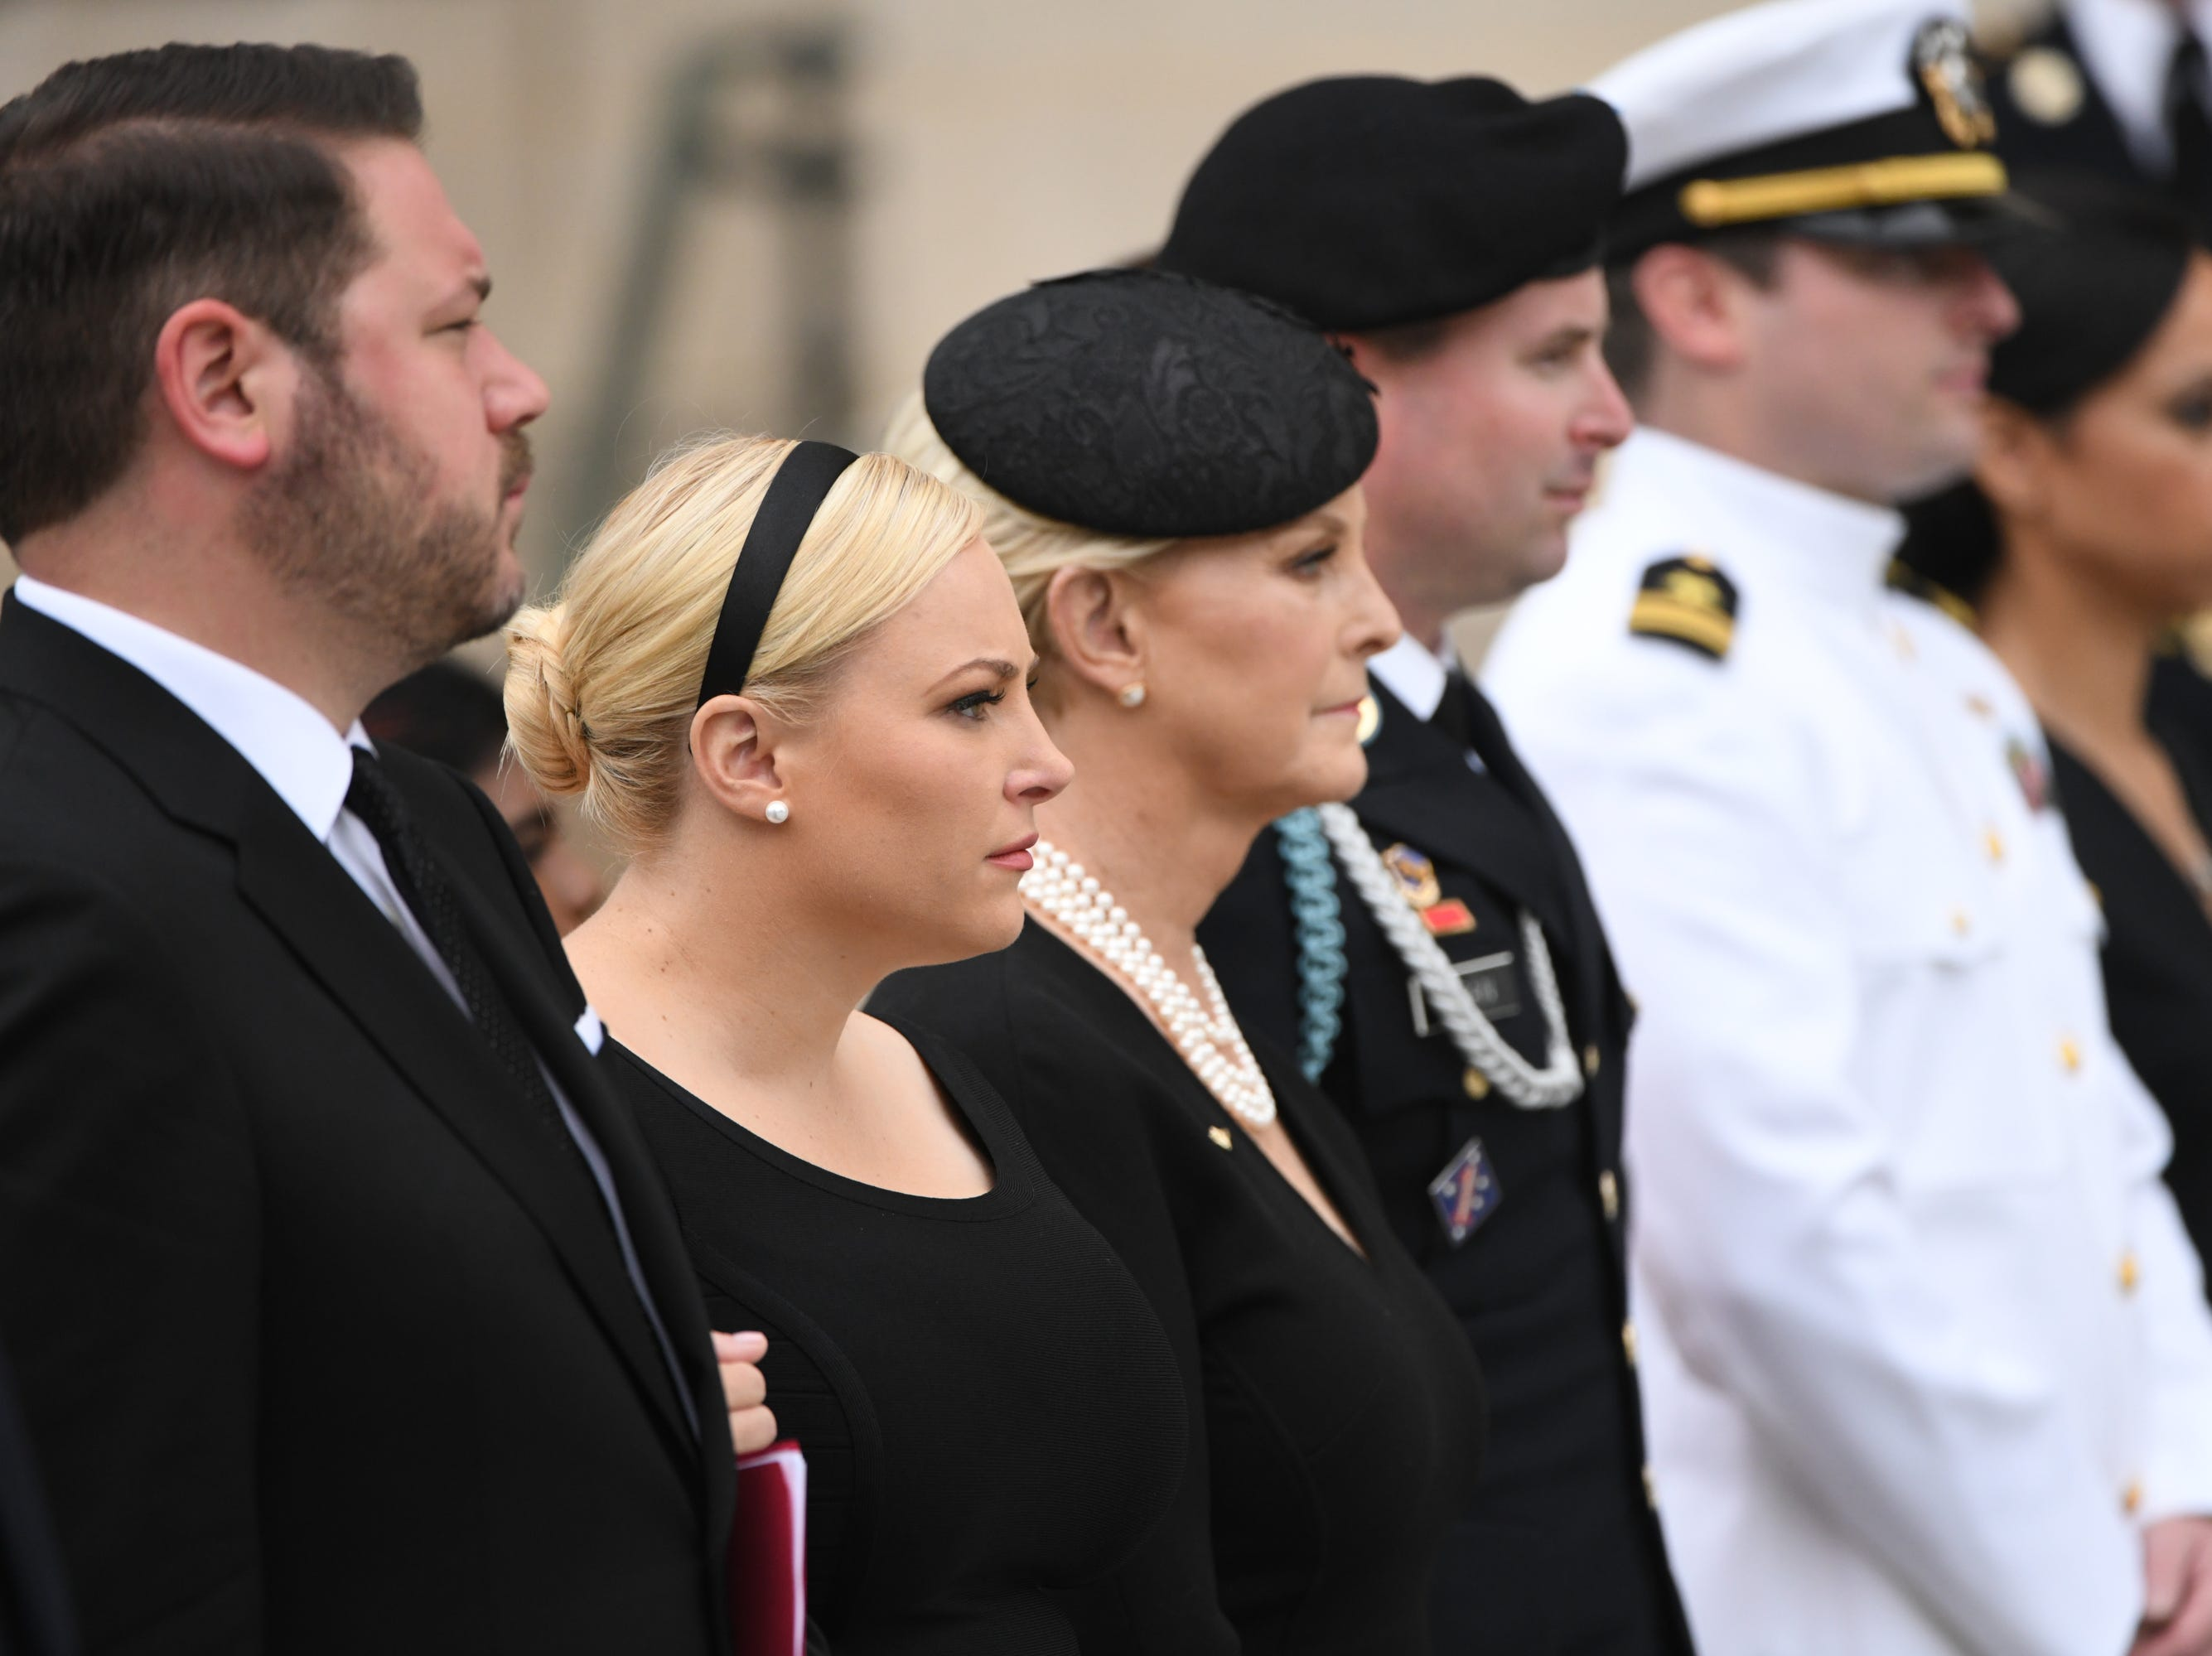 9/1/18 9:42:14 AM -- Washington, DC, U.S.A  -- Members of the McCain family watch as John McCainÕs casket is carried into the National Cathedral in Washington for a memorial service on Sept. 1, 2018. Sen. McCain died on Aug. 25. --    Photo by Jasper Colt, USA TODAY Staff